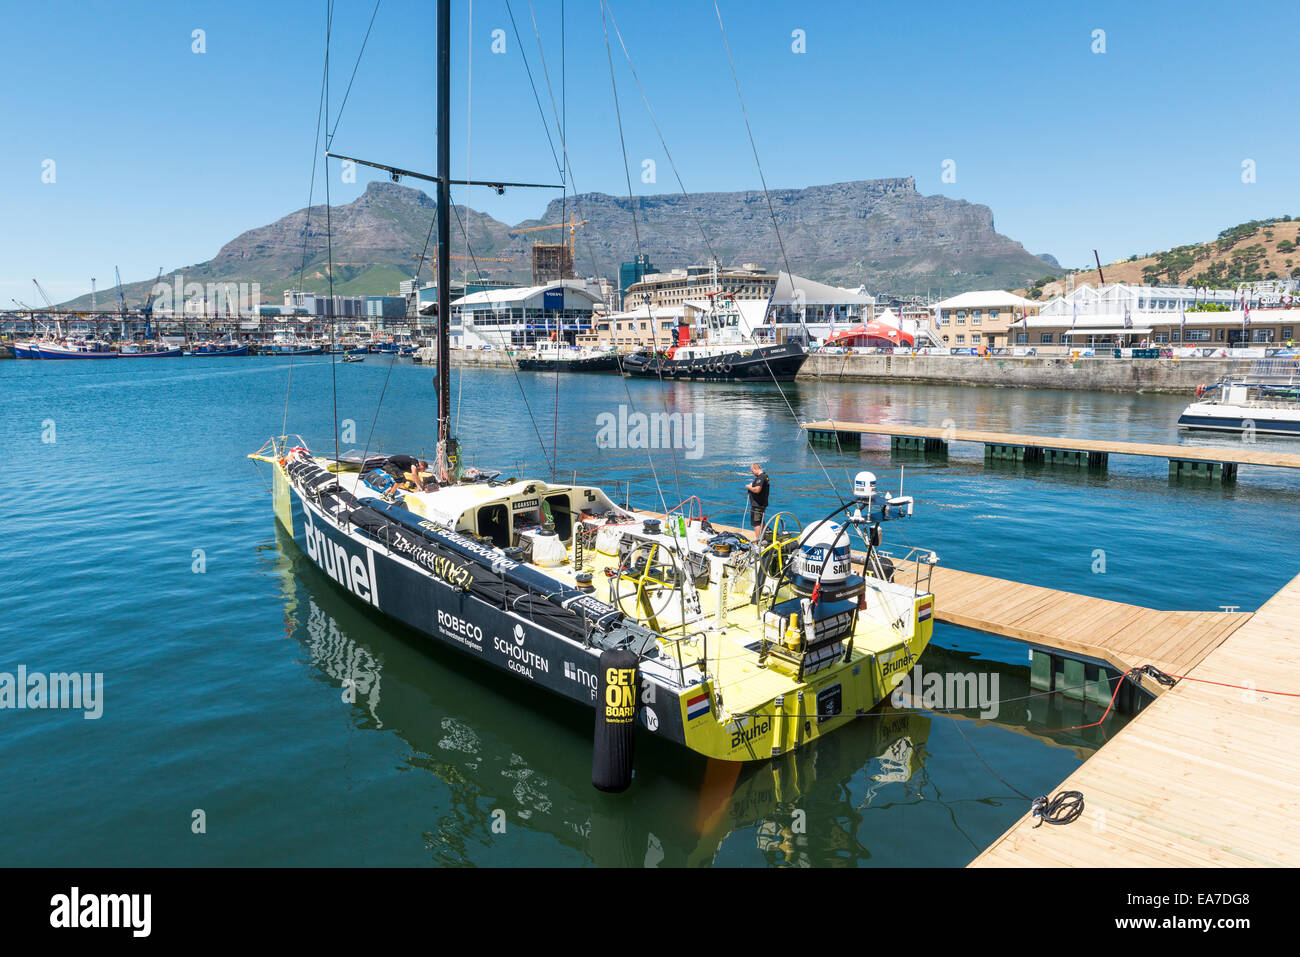 Bruel race team working on the boat in Cape Town, South Africa Stock Photo